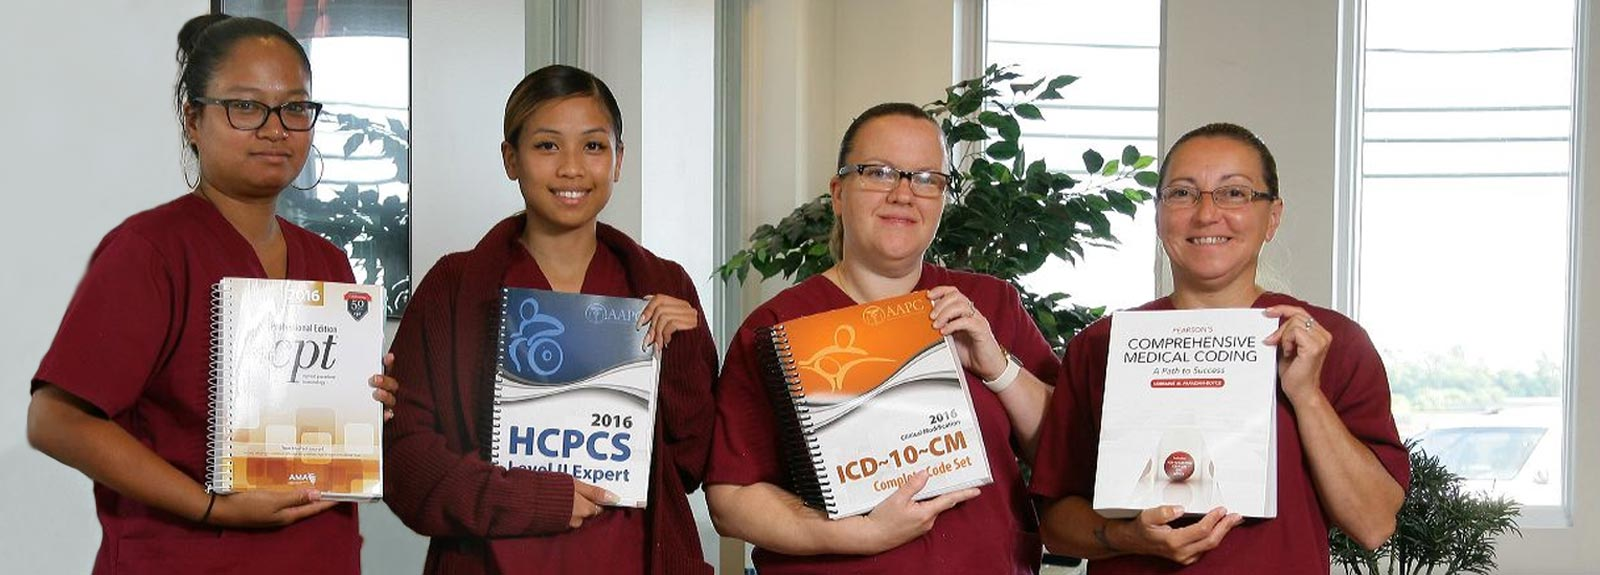 MTTI Medical Billing & Coding students holding hospital and health care coding text books.